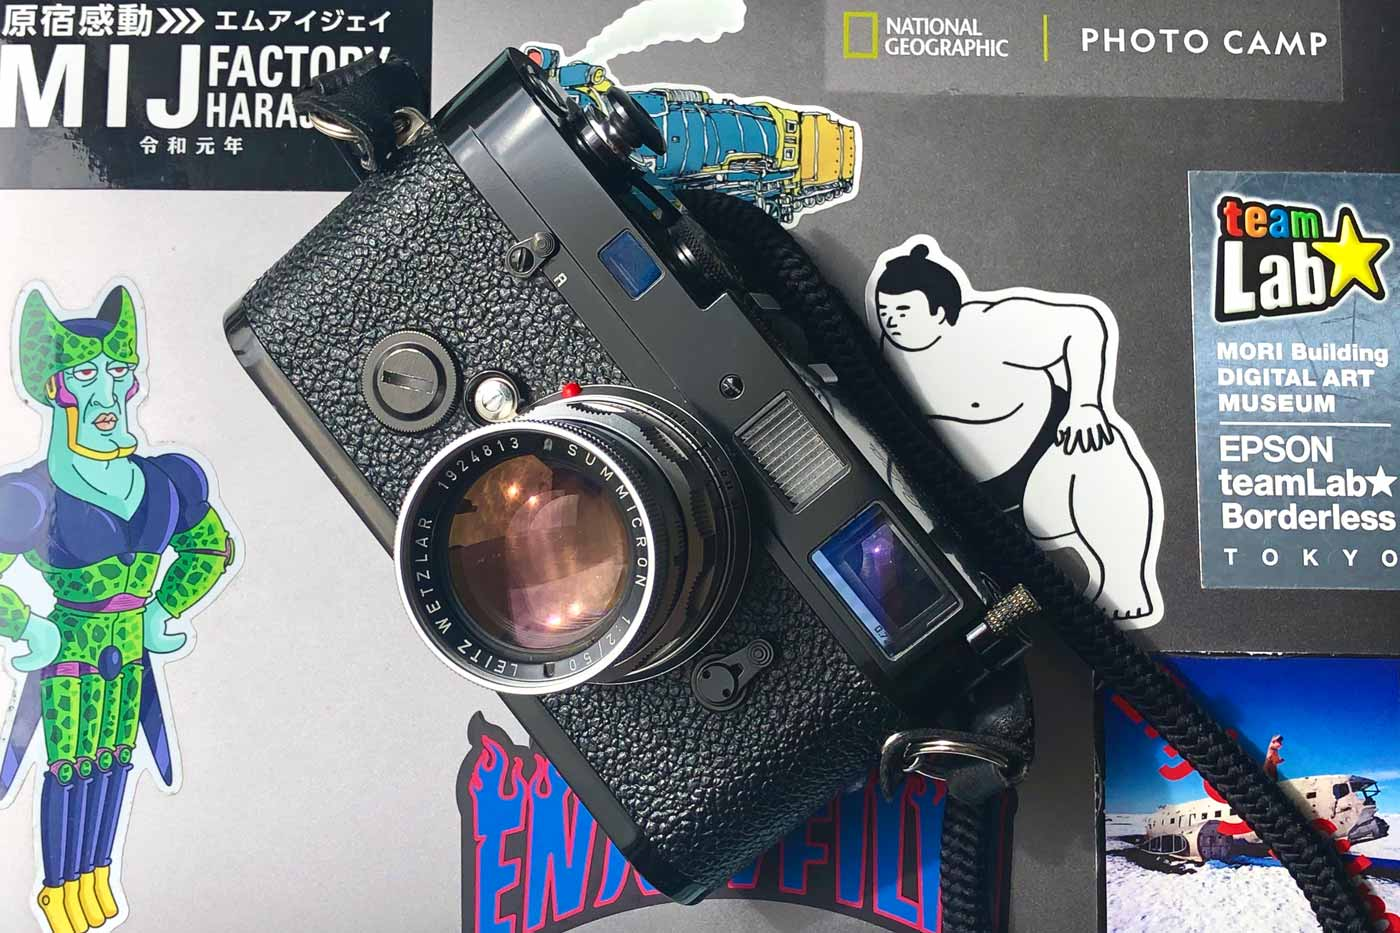 Leica-Summicron-50mm-50-f2-Rigid-Type-2-II-lens-review-font-cover-character-most-beautiful-lenses-artisan-artist-strap-MP-a-la-carte-black-paint-vulcanite-amber-coating-stickers-comparison